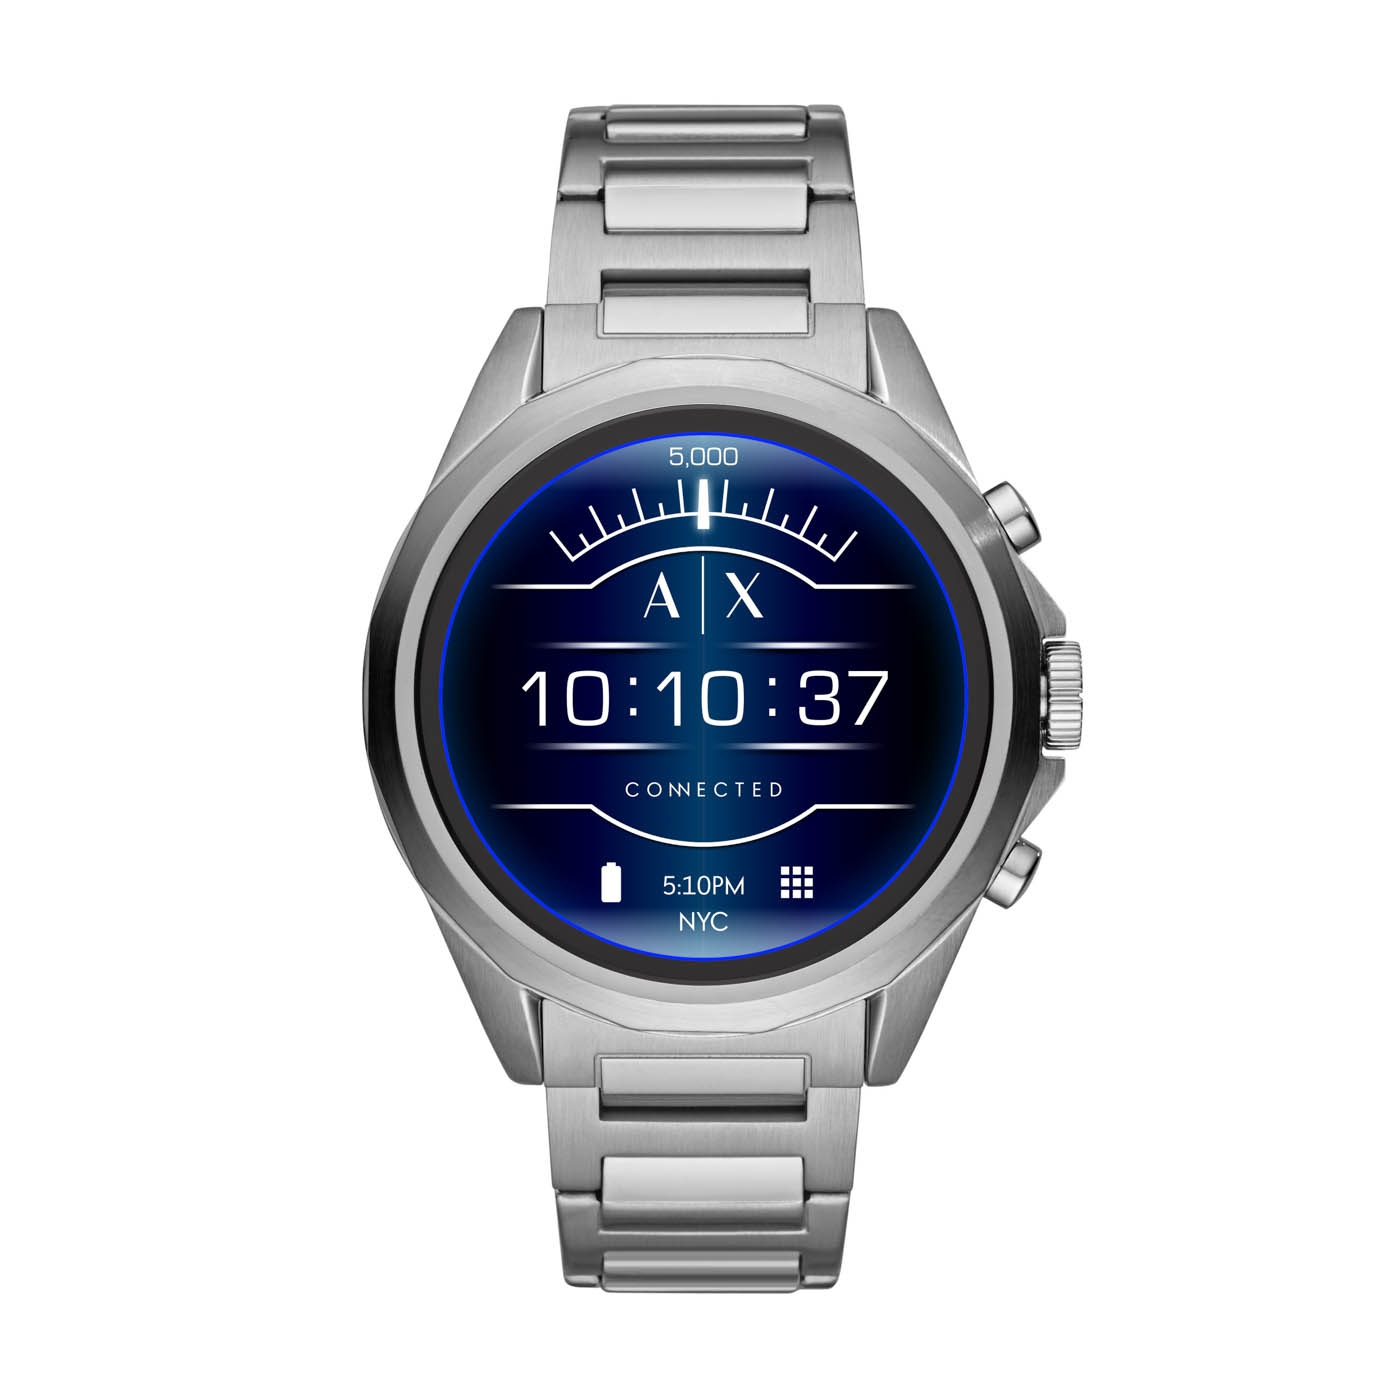 Immagine di Armani Exchange Connected Drexler Gen 4 Display Smartwatch AXT2000